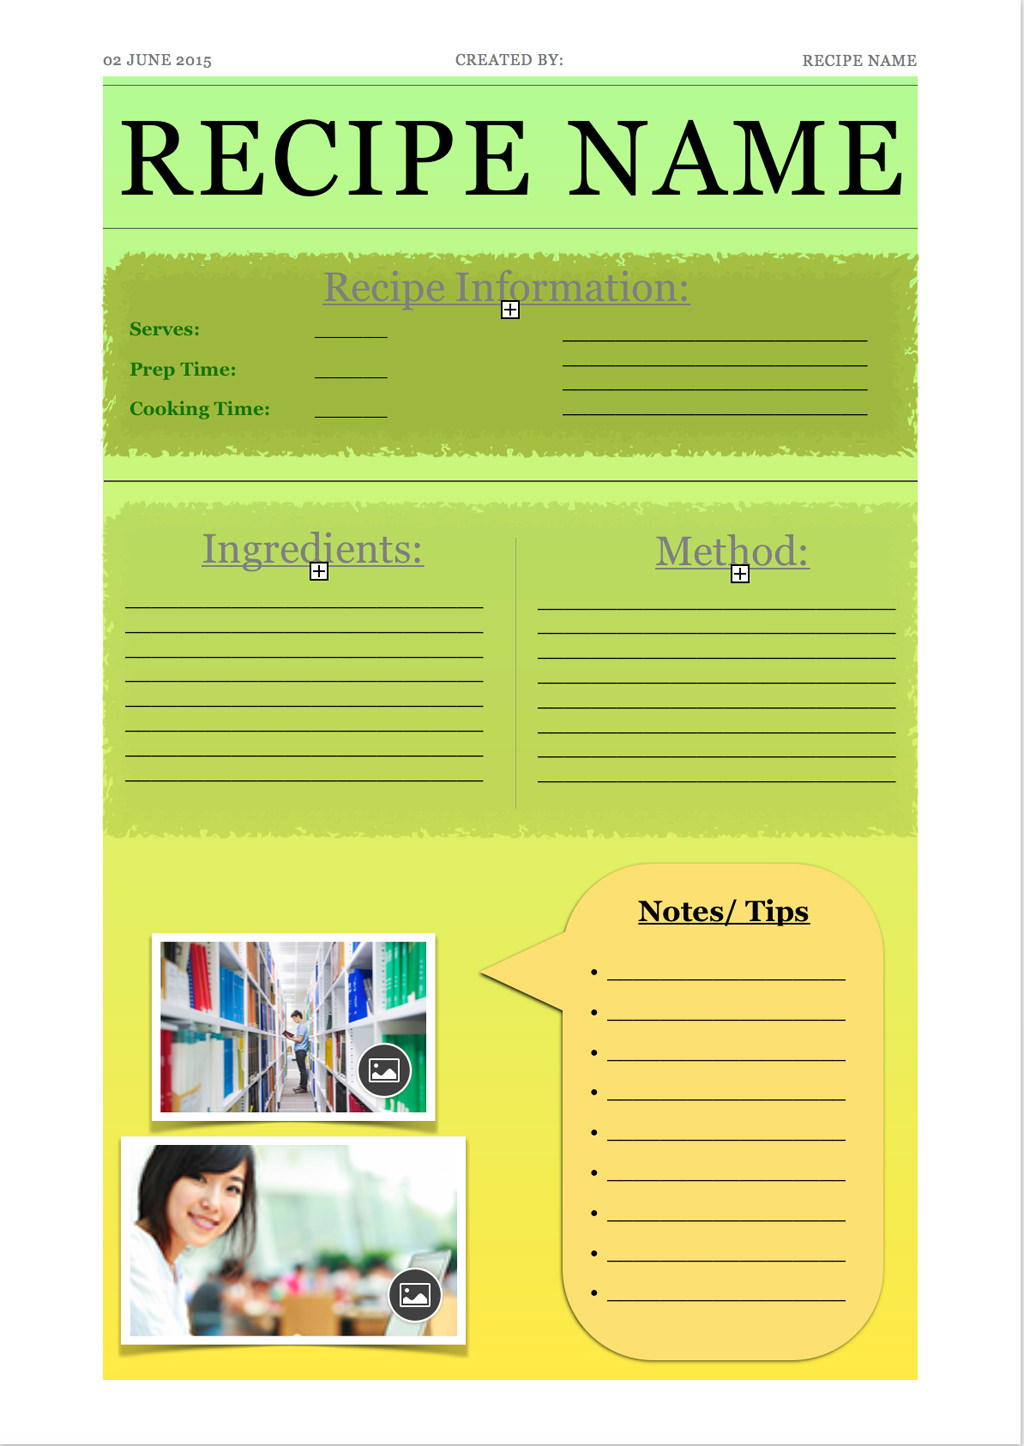 Full-Page Recipe with Green and Yellow Accents